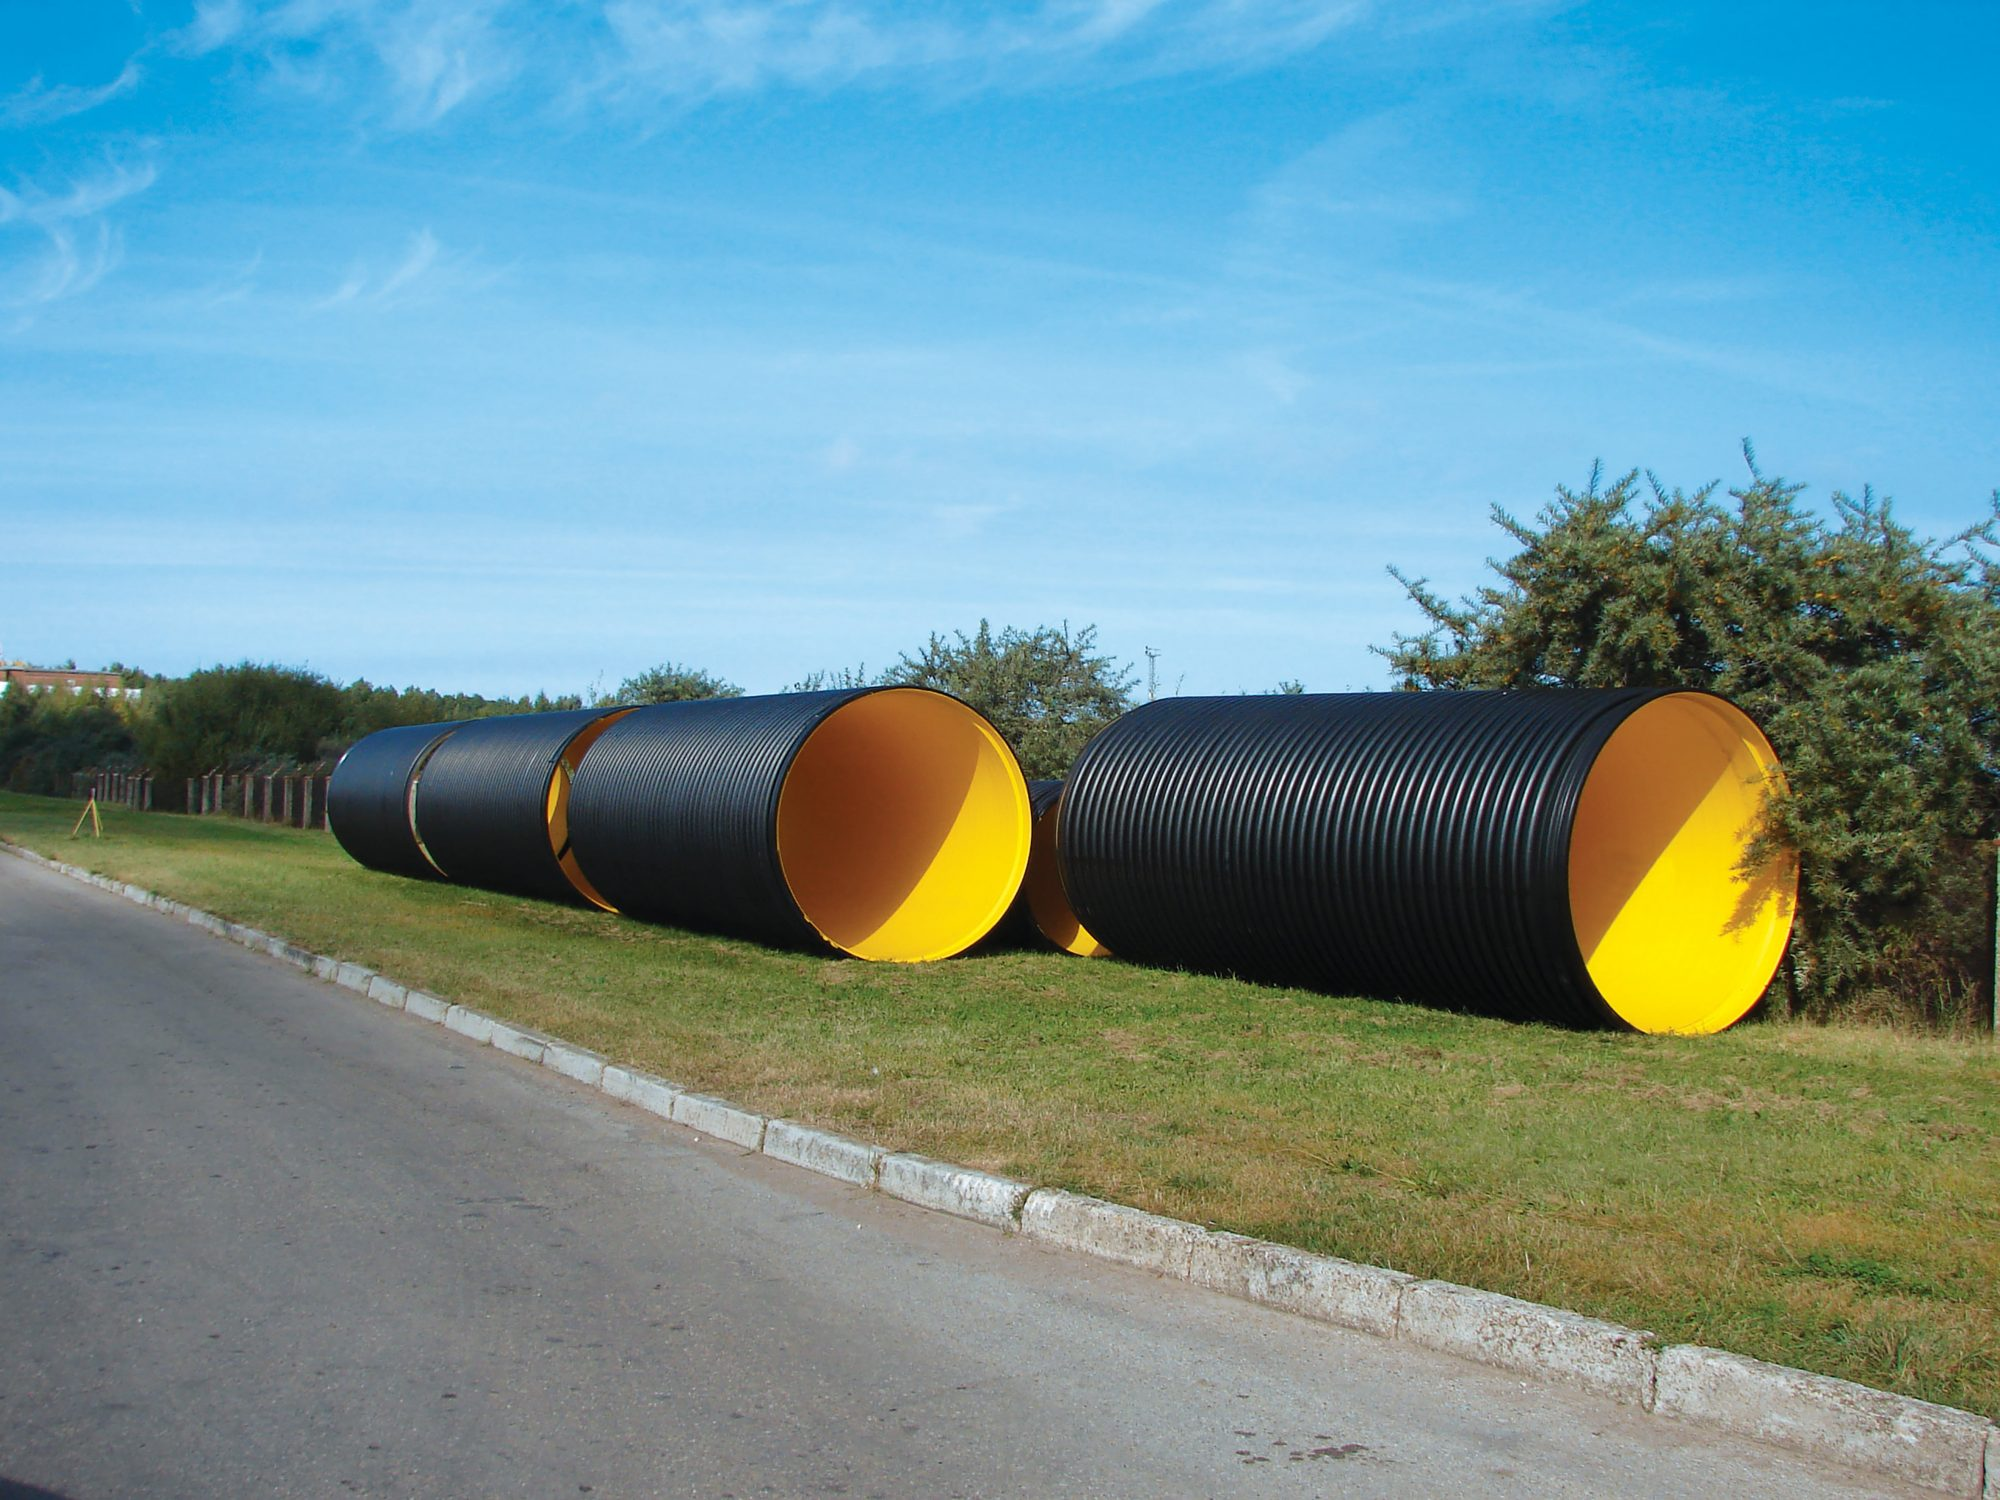 PE pipes manufactured by Solo Plastics